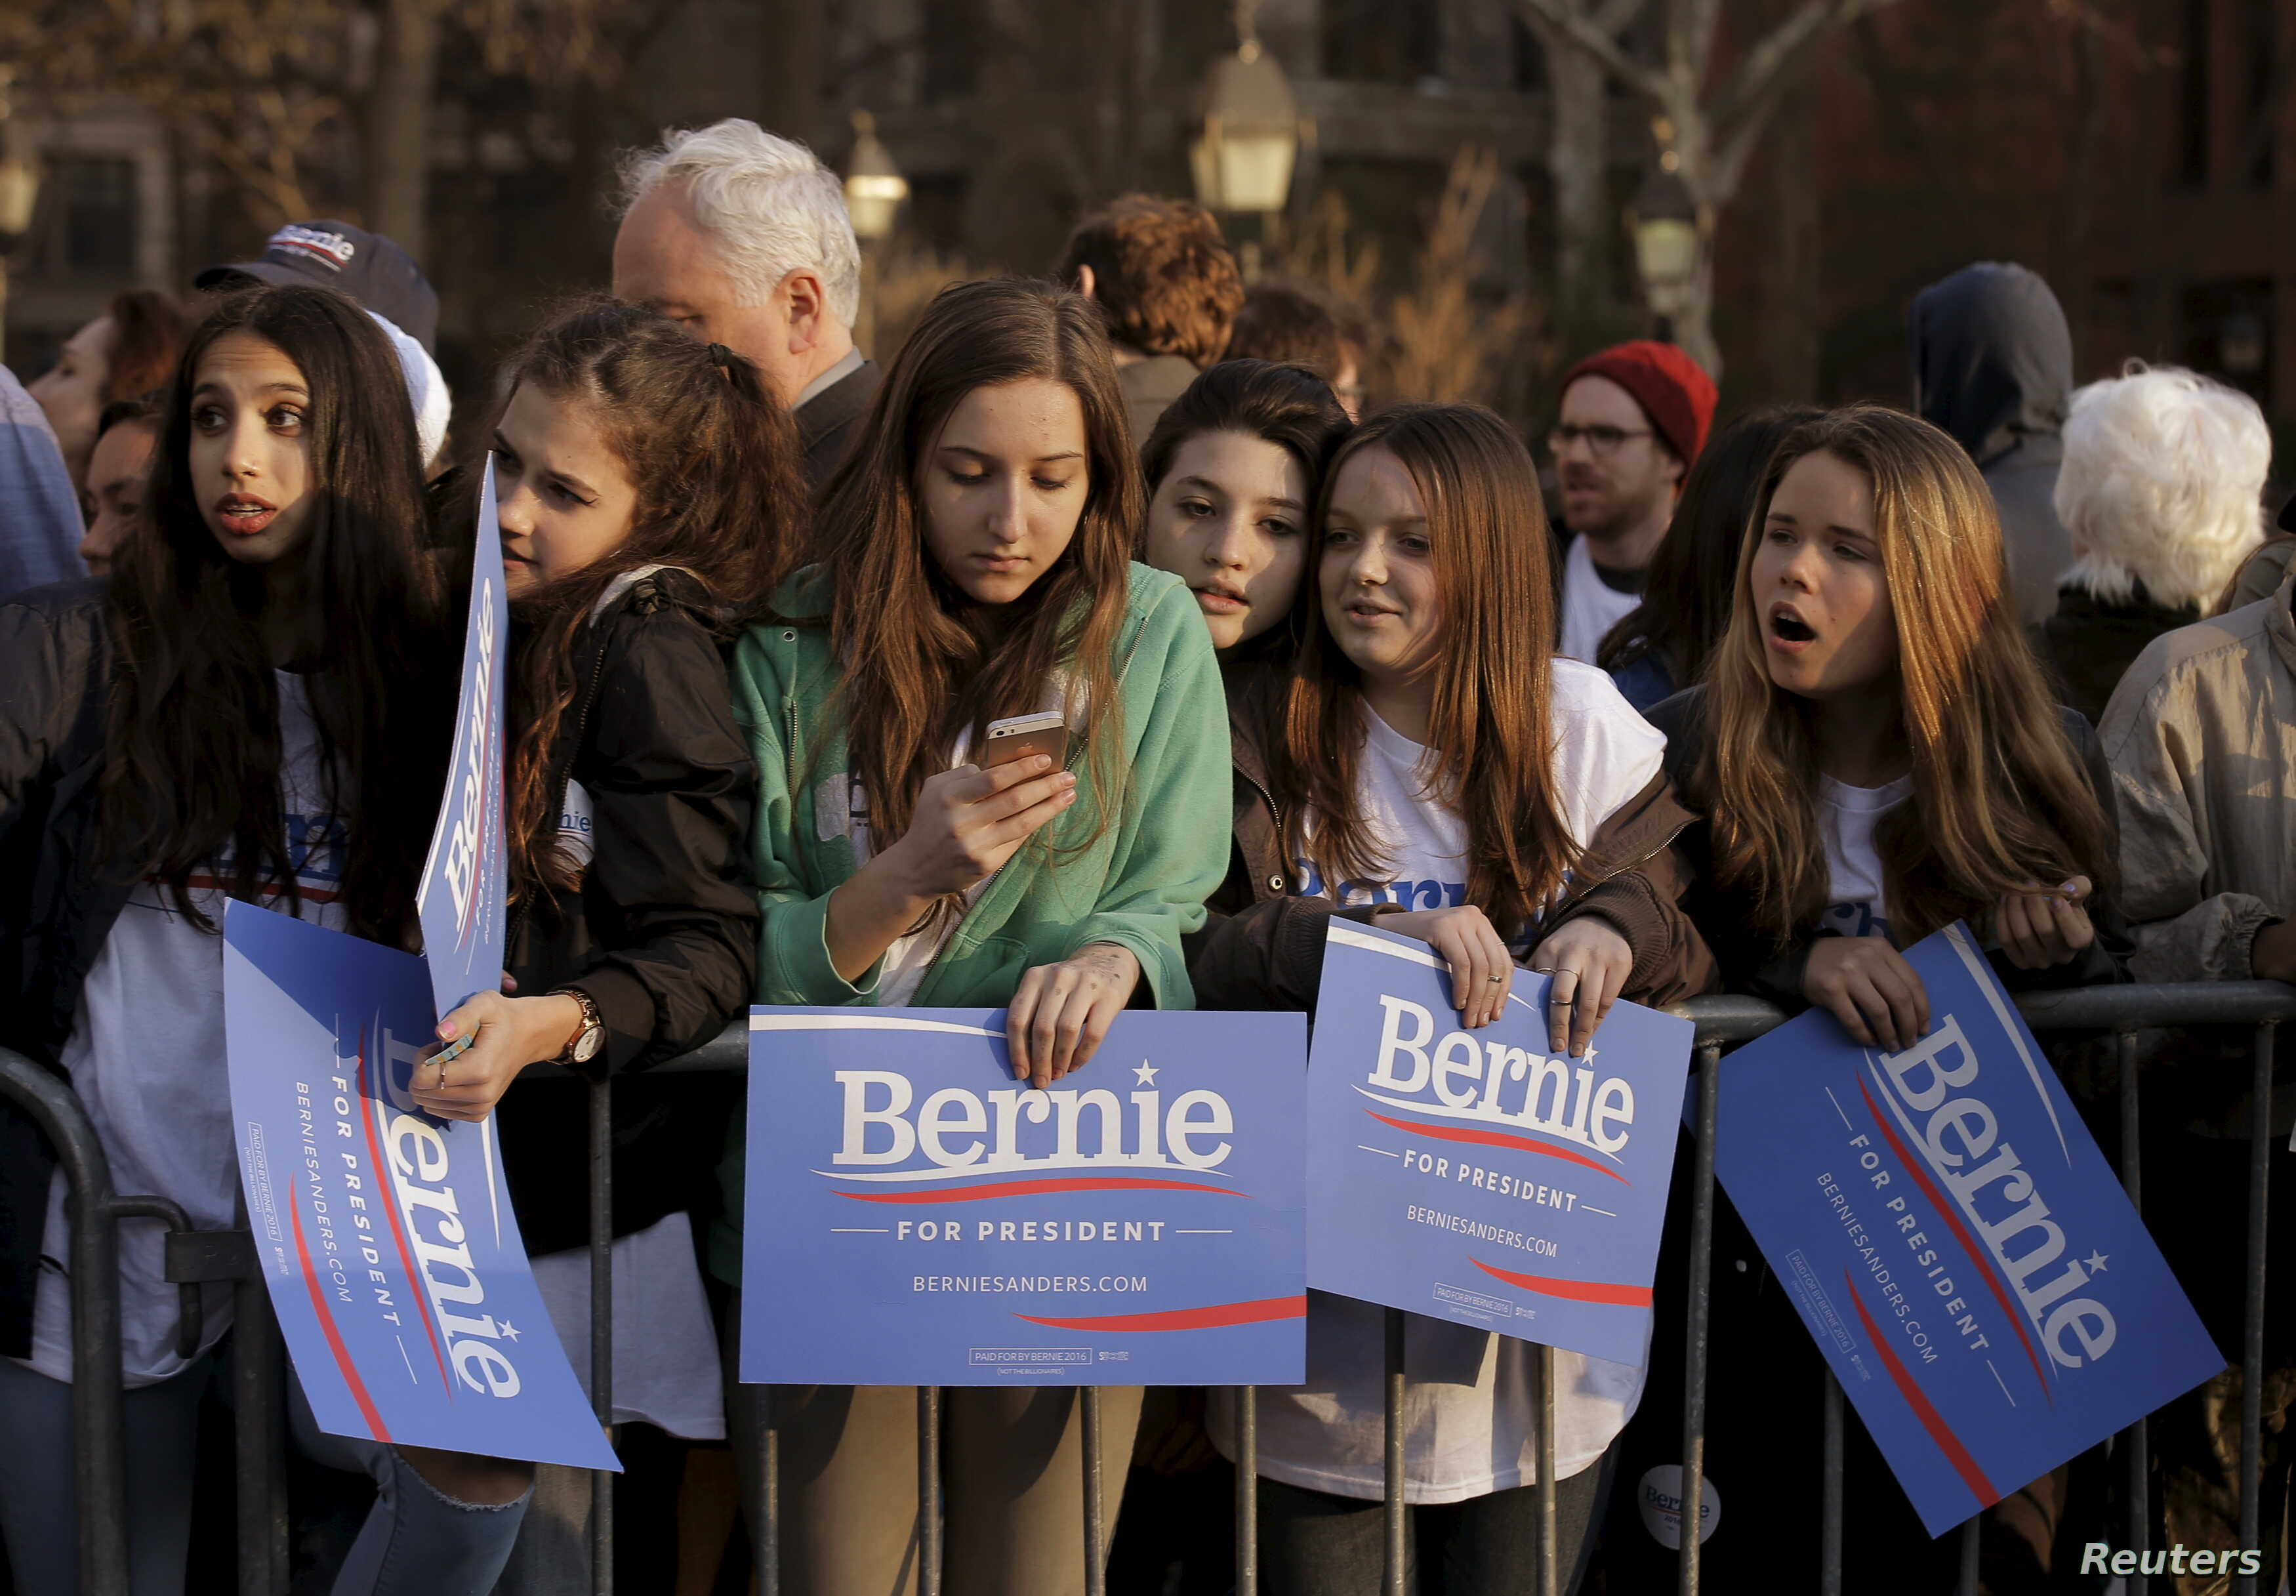 Supporters gather at a campaign rally for Democratic presidential candidate Bernie Sanders in Washington Square Park in the Greenwich Village neighborhood of New York, April 13, 2016.